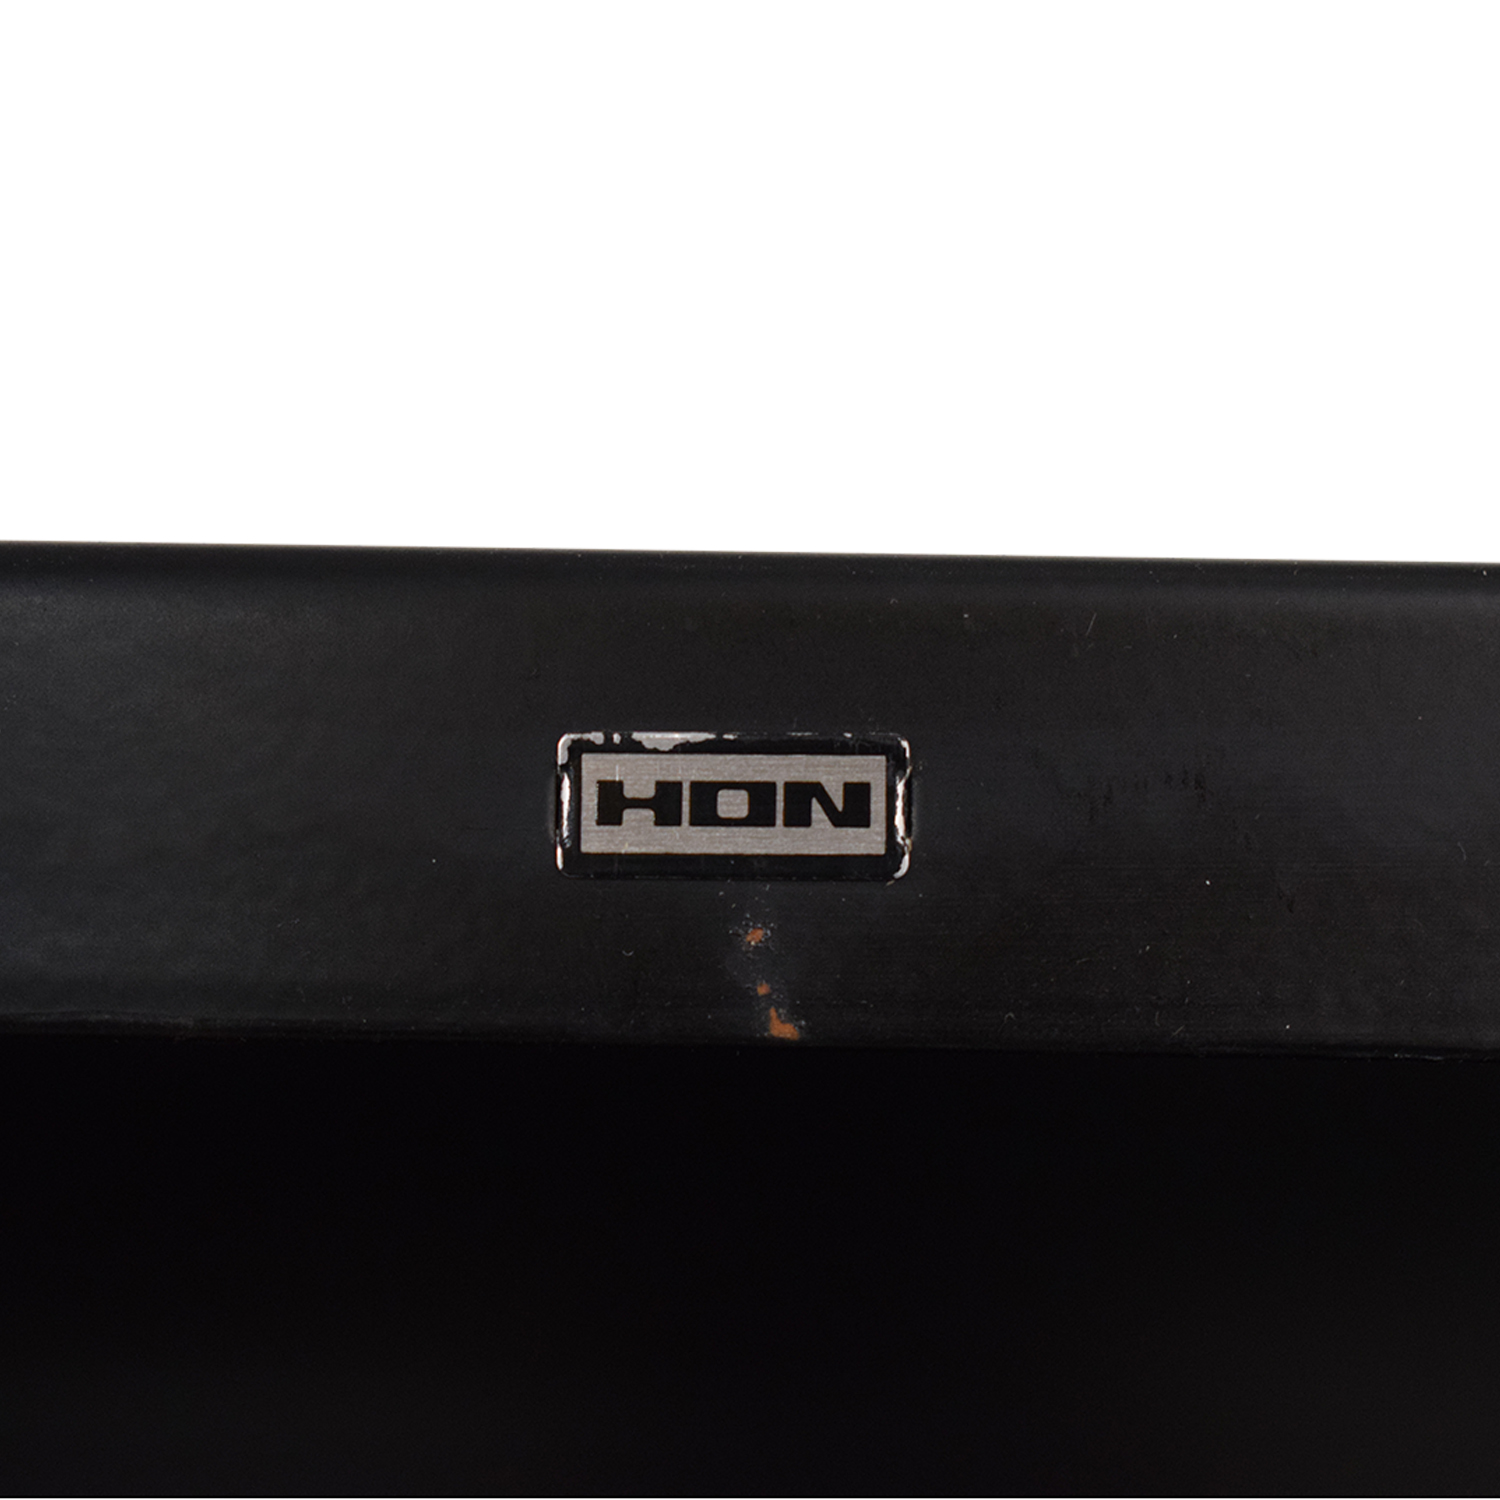 Hon HON Brigade 5-Shelf Bookcase ma